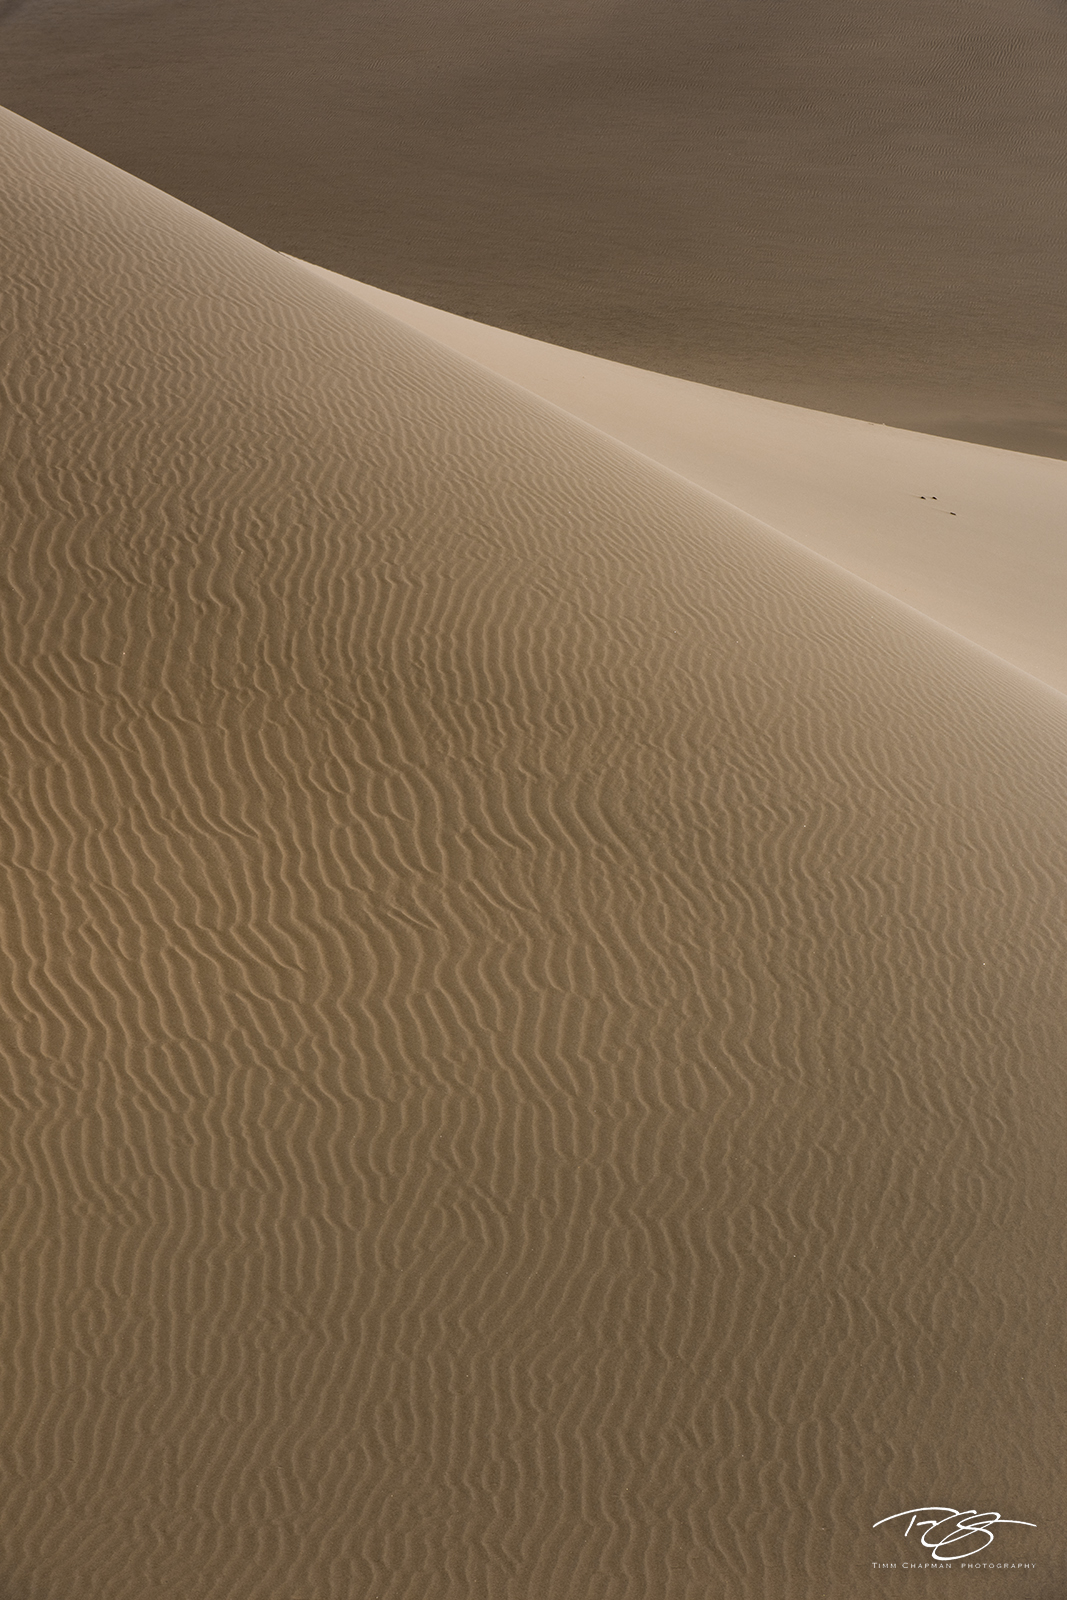 gobi desert, china, abstract, patterns, sand dune, sand, dune, desert, sandscape, photo